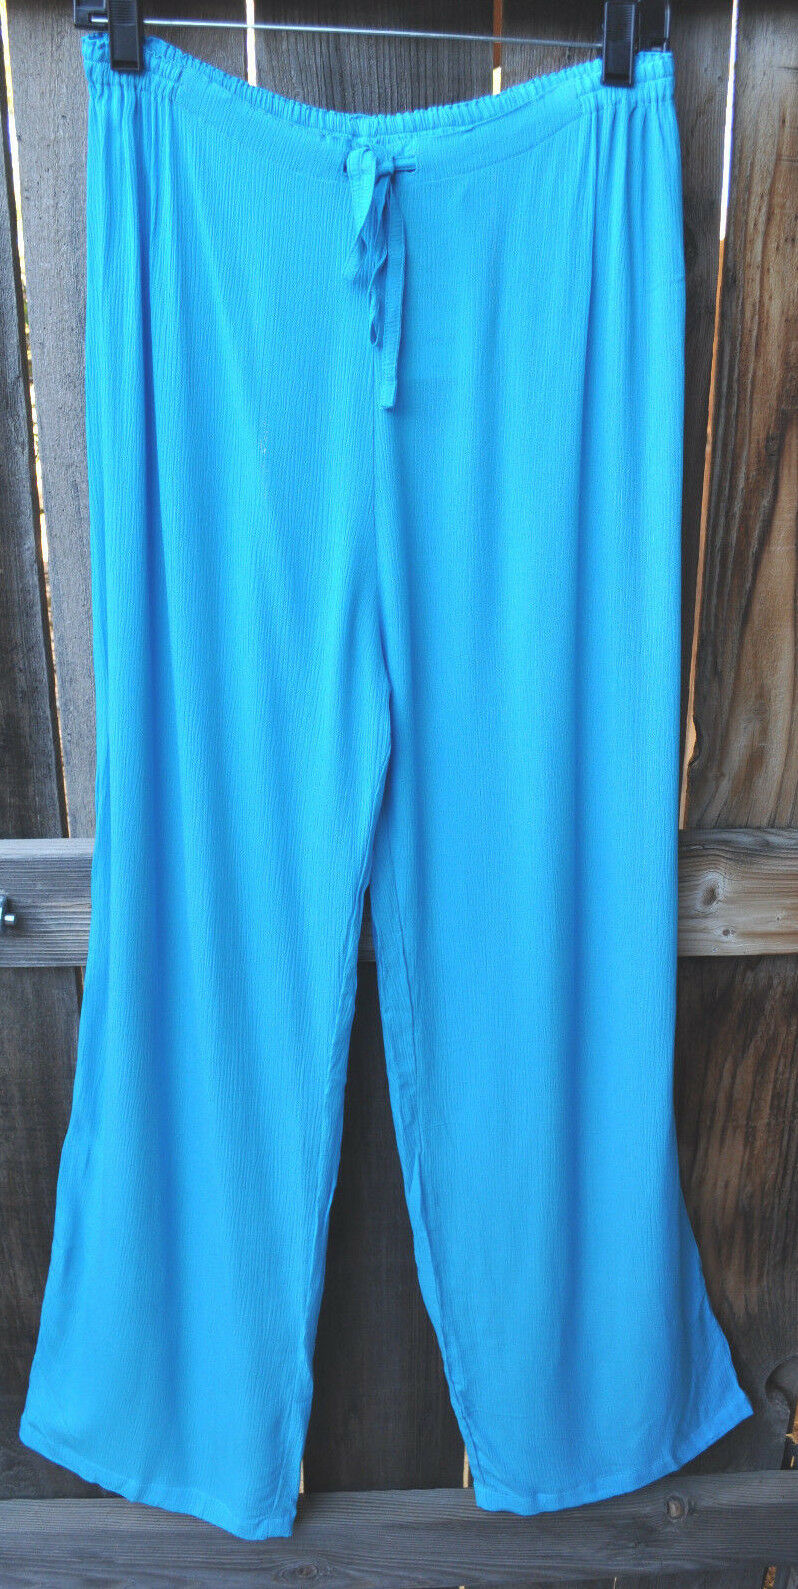 ART TO WEAR 4 PANT IN CLASSIC SOLID TURQUOISE BY MISSION CANYON,ONE SIZE, NWT ,